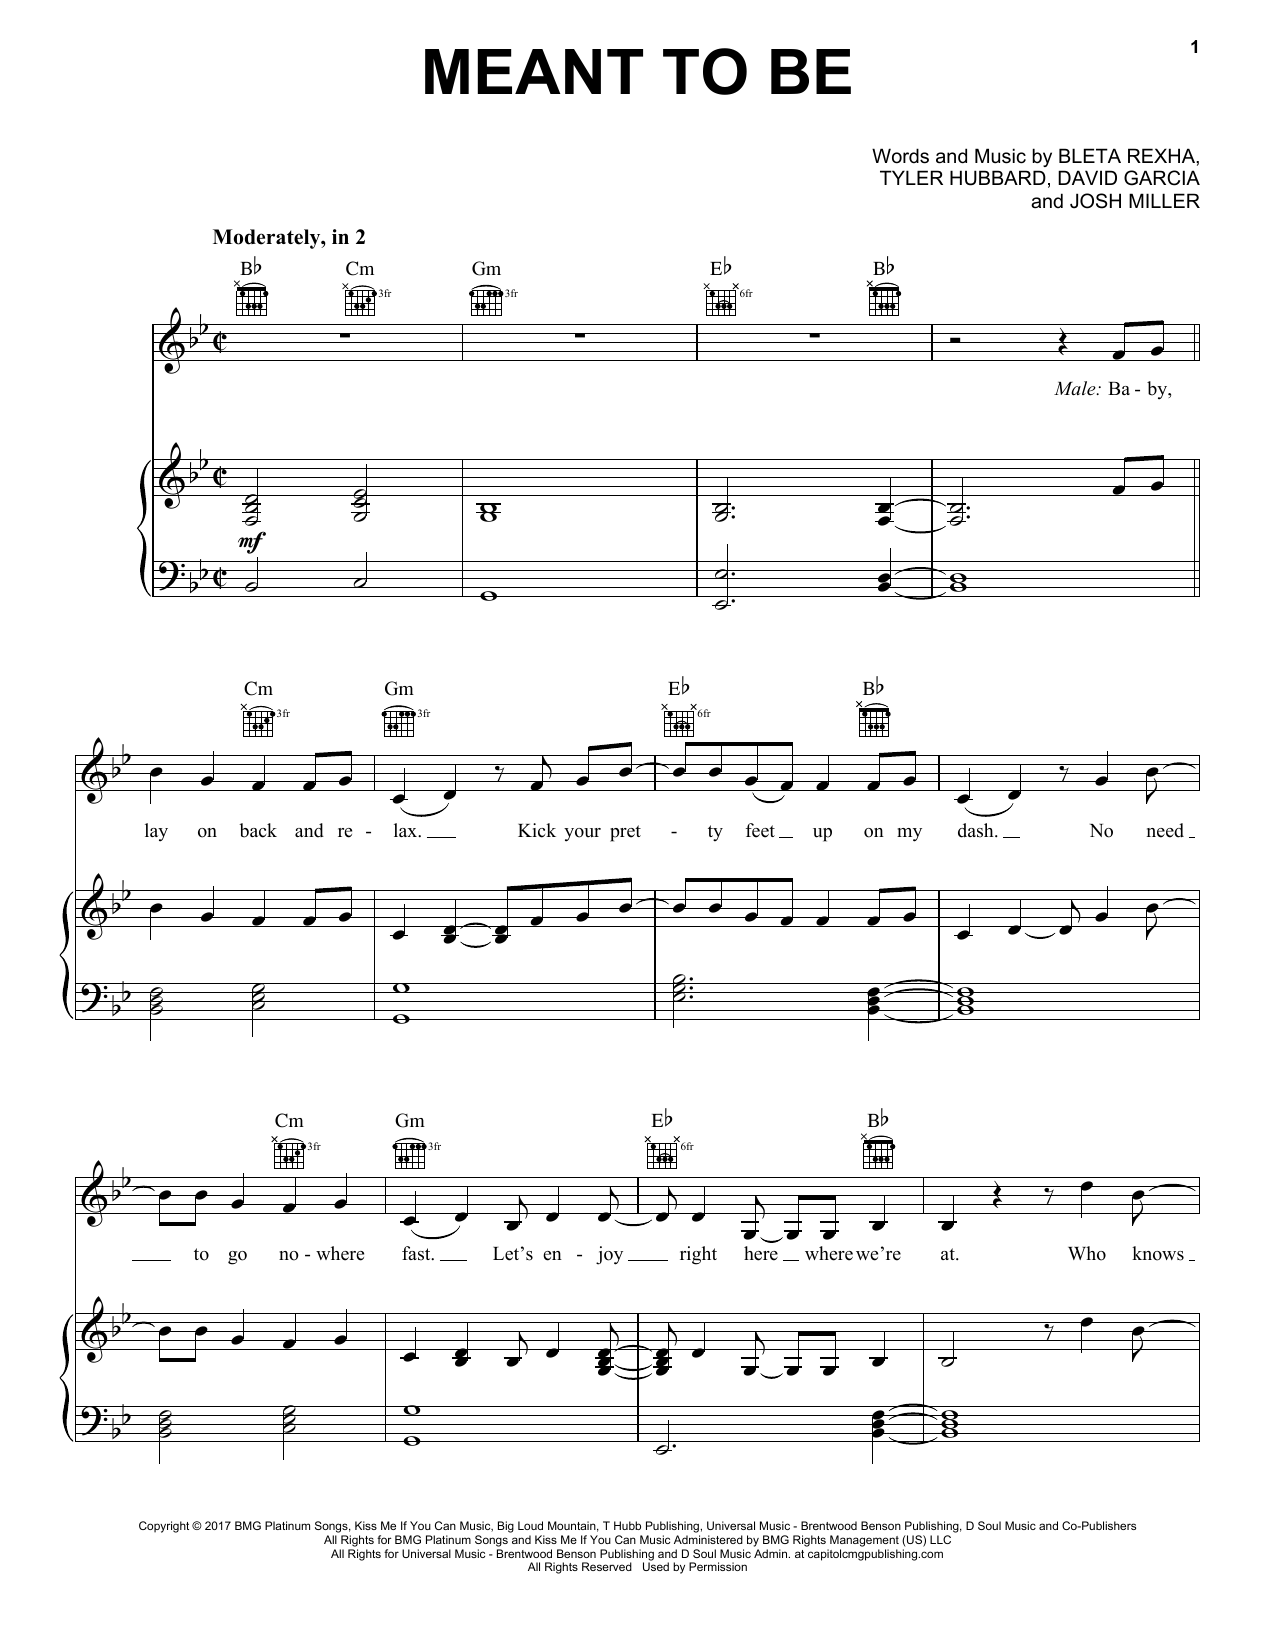 Bebe Rexha 'Meant To Be (feat  Florida Georgia Line)' Sheet Music Notes,  Chords | Download Printable Piano, Vocal & Guitar (Right-Hand Melody) -  SKU: